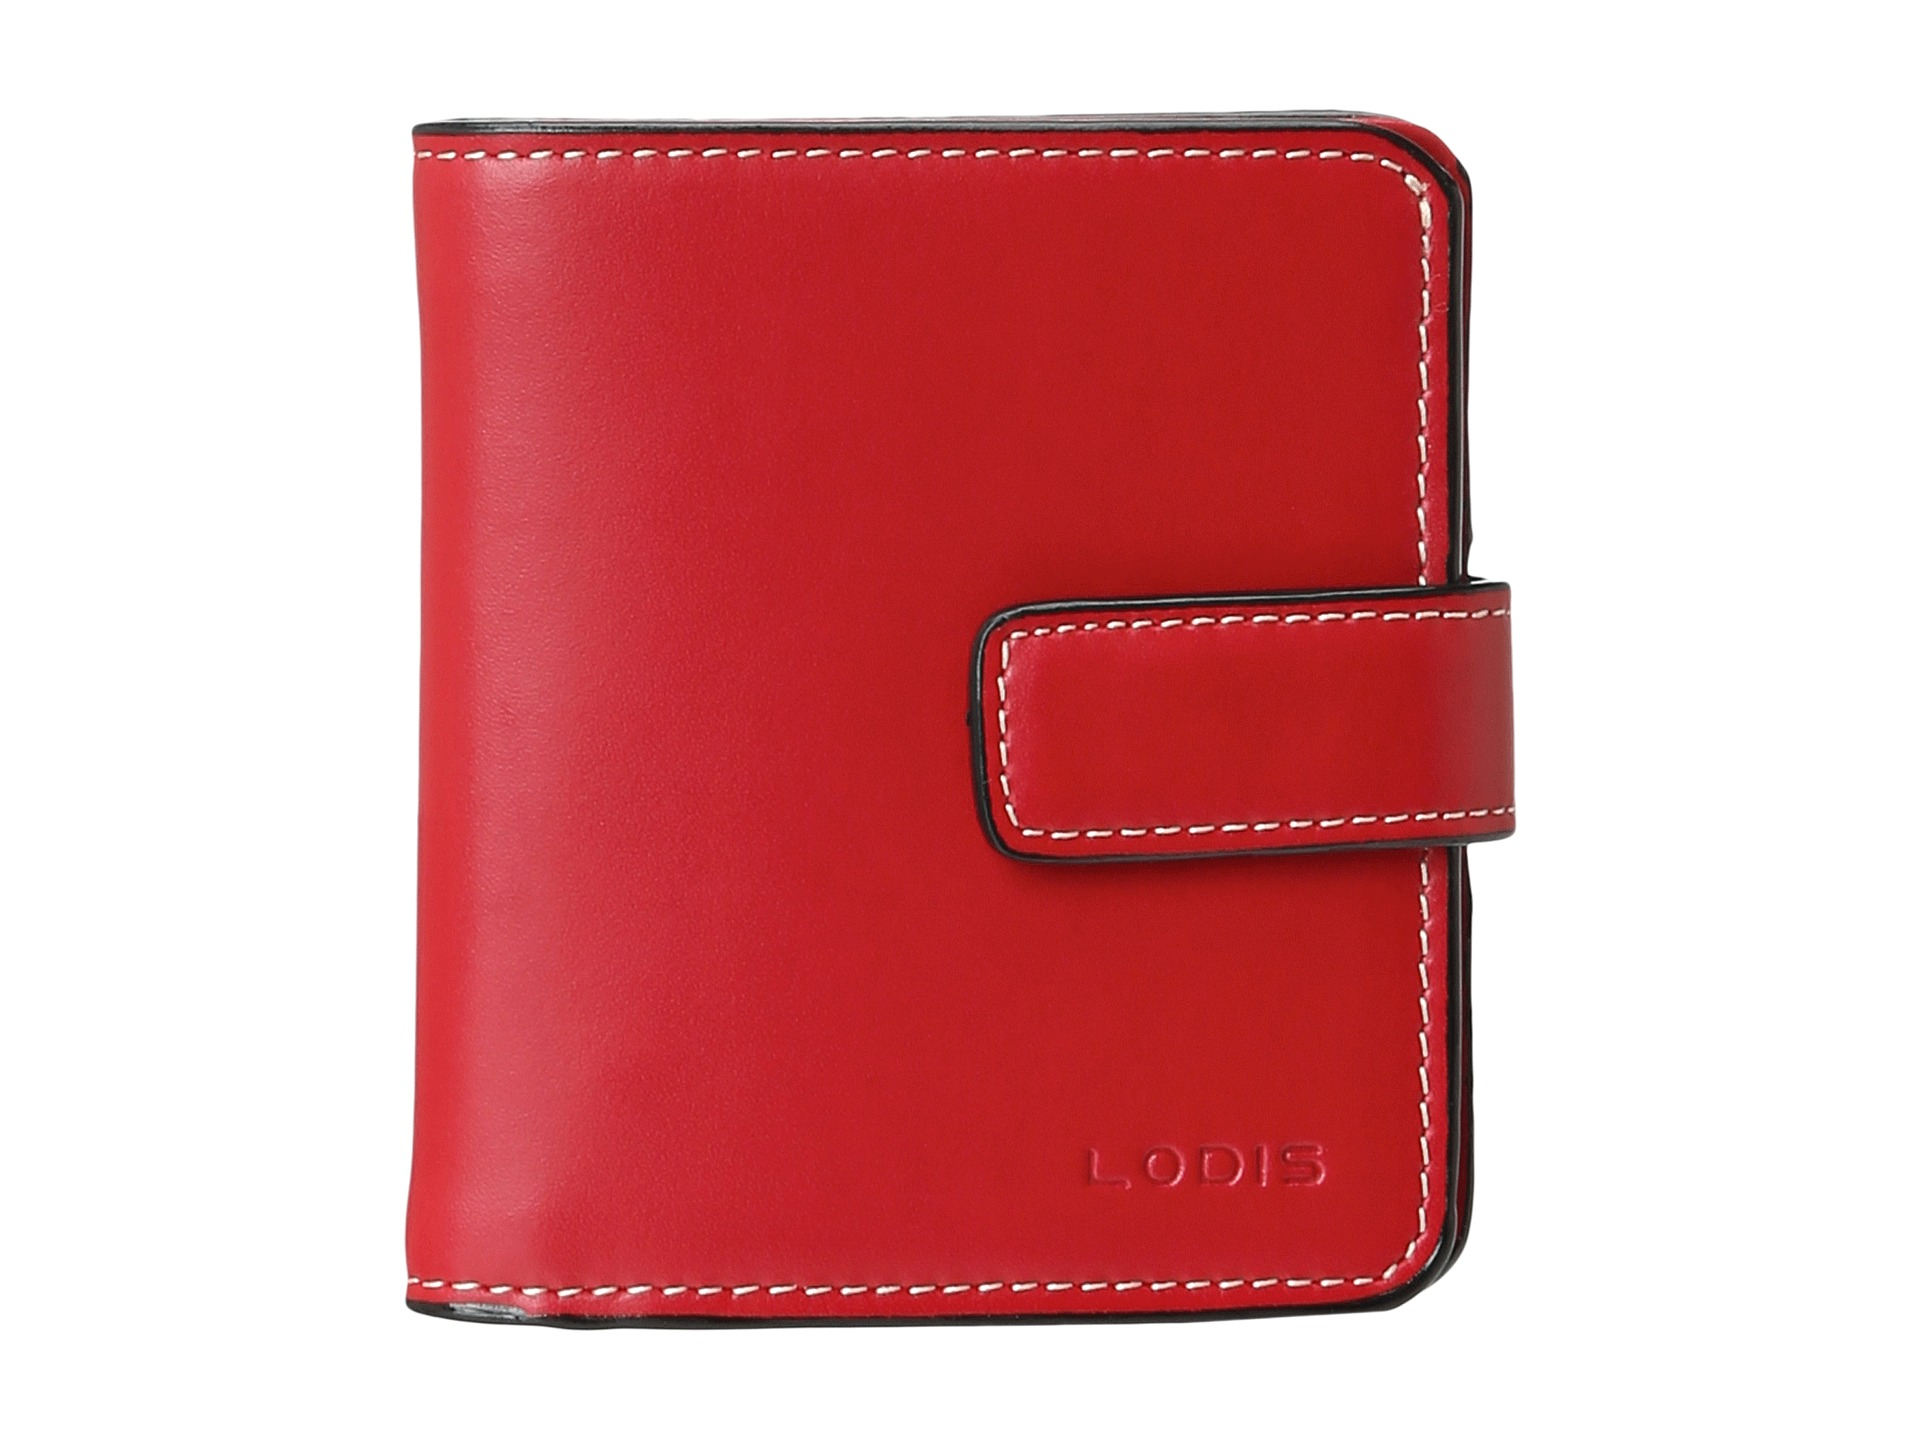 Lodis Womens Wallets Sale: Save Up to 50% Off! Shop eastreads.ml's huge selection of Lodis Wallets for Women - Over 80 styles available. FREE Shipping & Exchanges, and a % price guarantee!